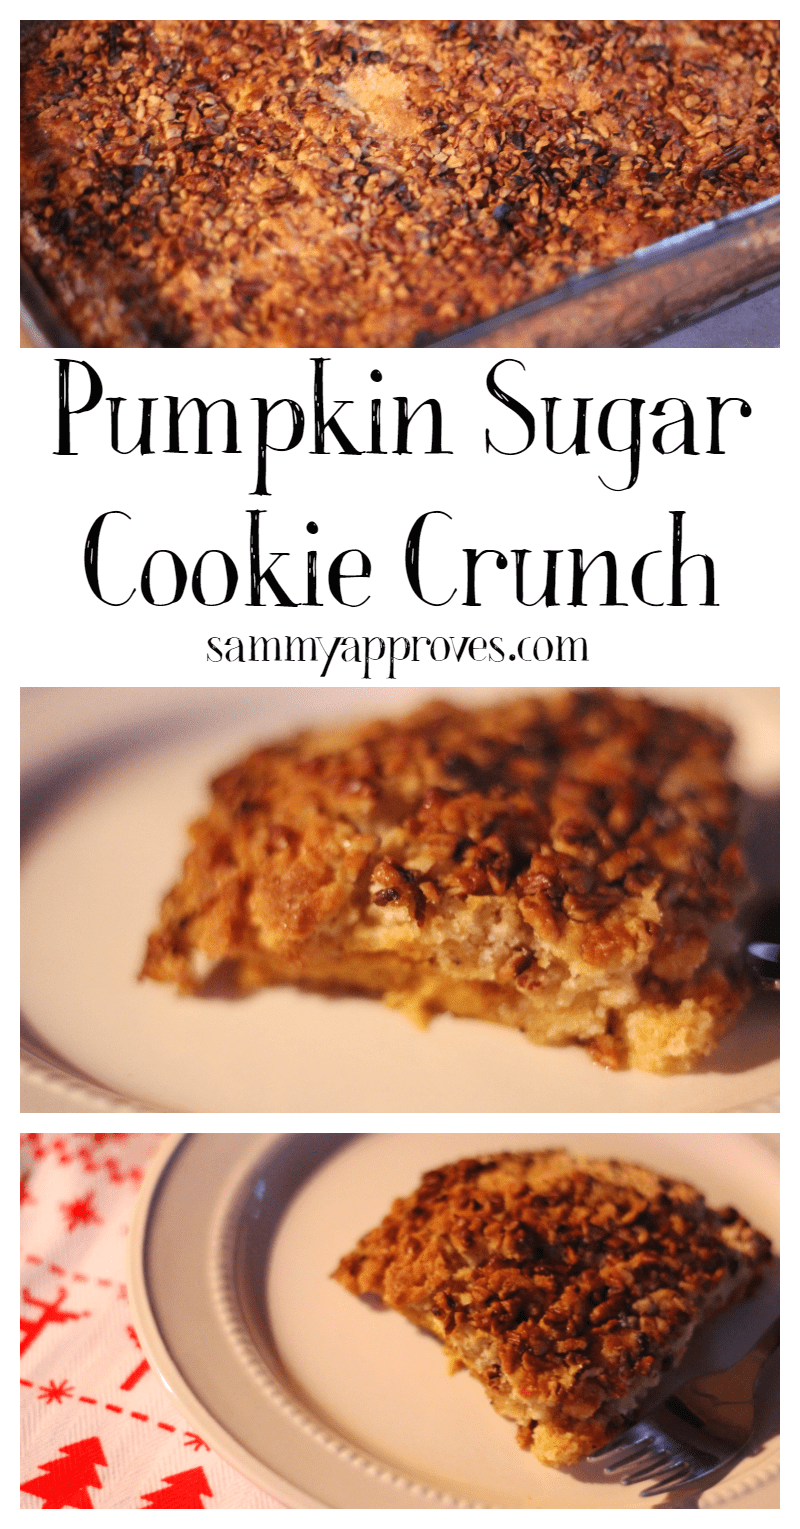 pumpkin-sugar-cookie-crunch-min